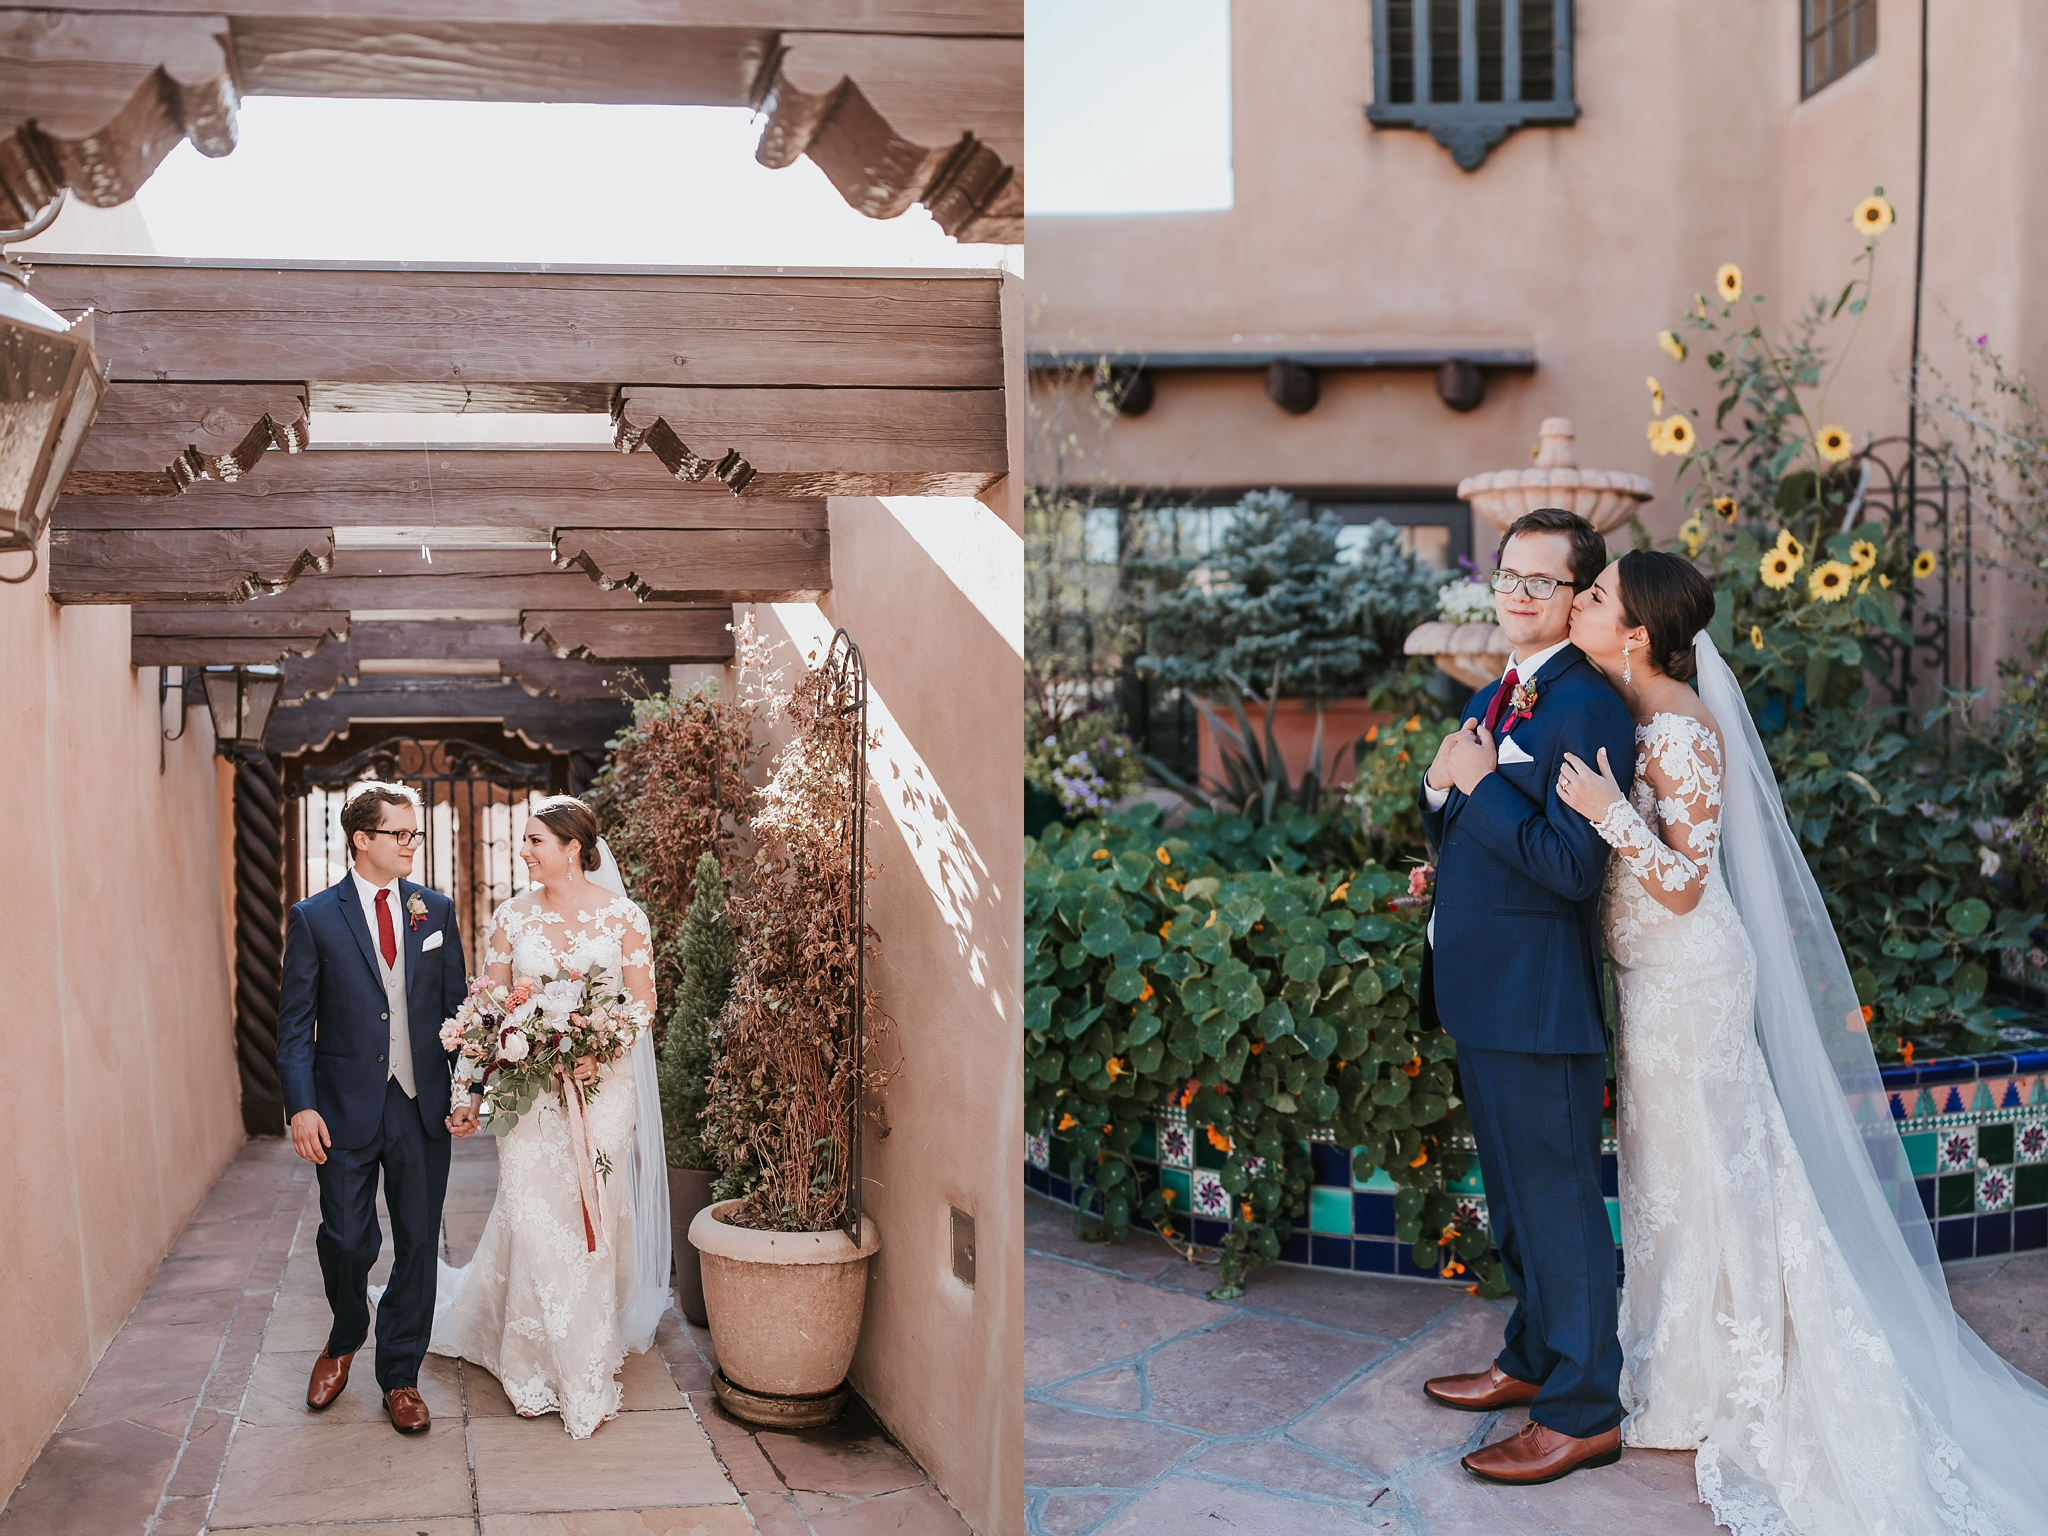 Alicia+lucia+photography+-+albuquerque+wedding+photographer+-+santa+fe+wedding+photography+-+new+mexico+wedding+photographer+-+new+mexico+wedding+-+engagement+-+santa+fe+wedding+-+la+fonda+on+the+plaza+-+la+fonda+wedding_0013.jpg